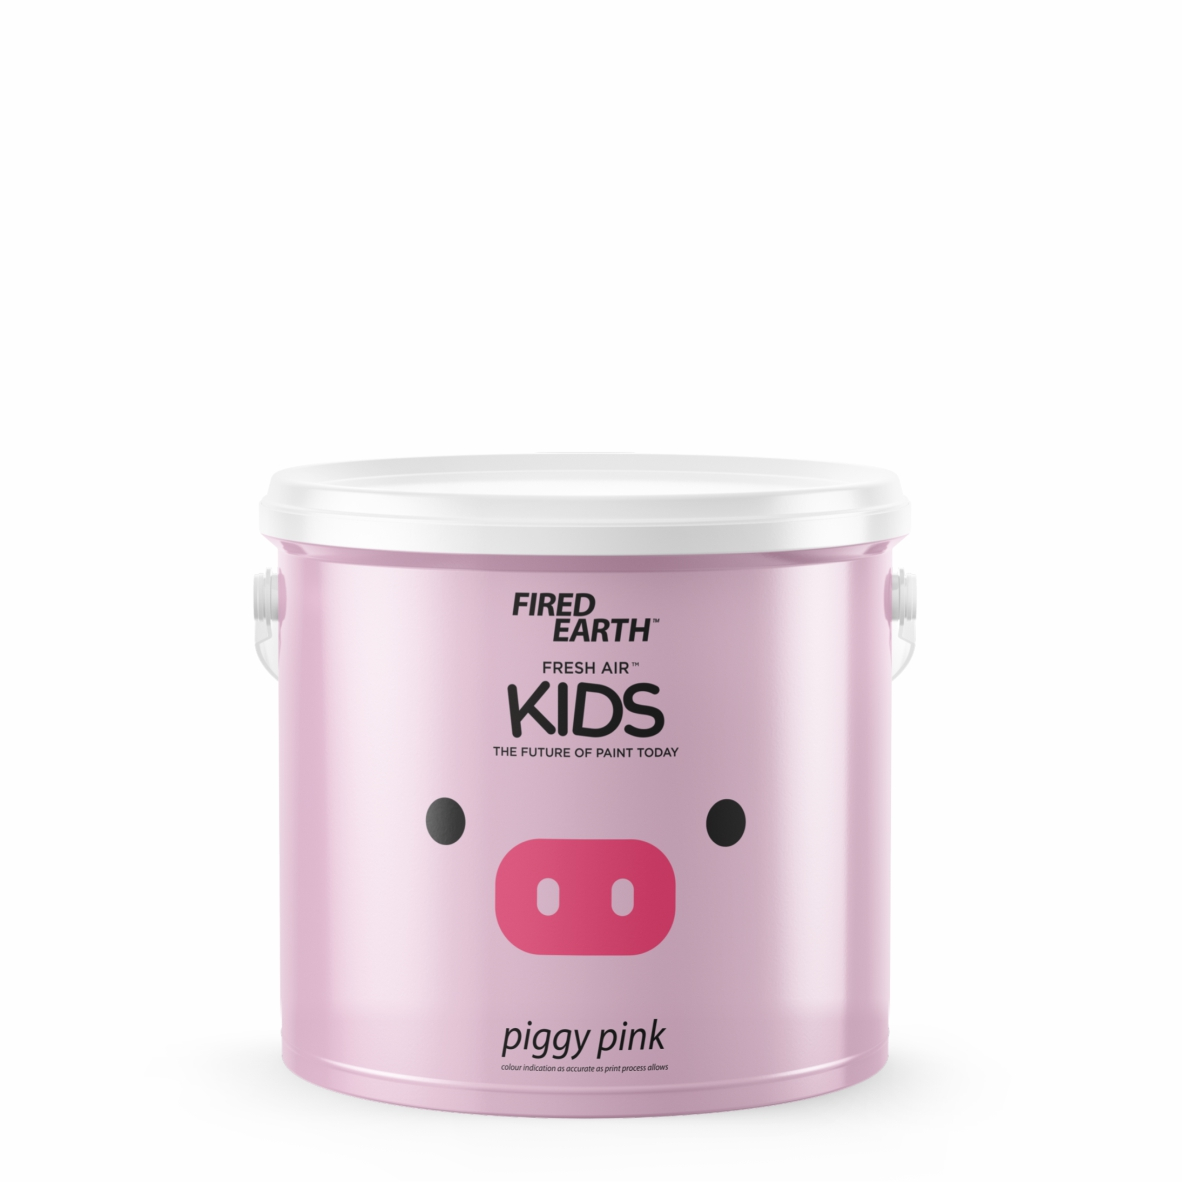 FE Fresh Air Kids piggy pink.jpg